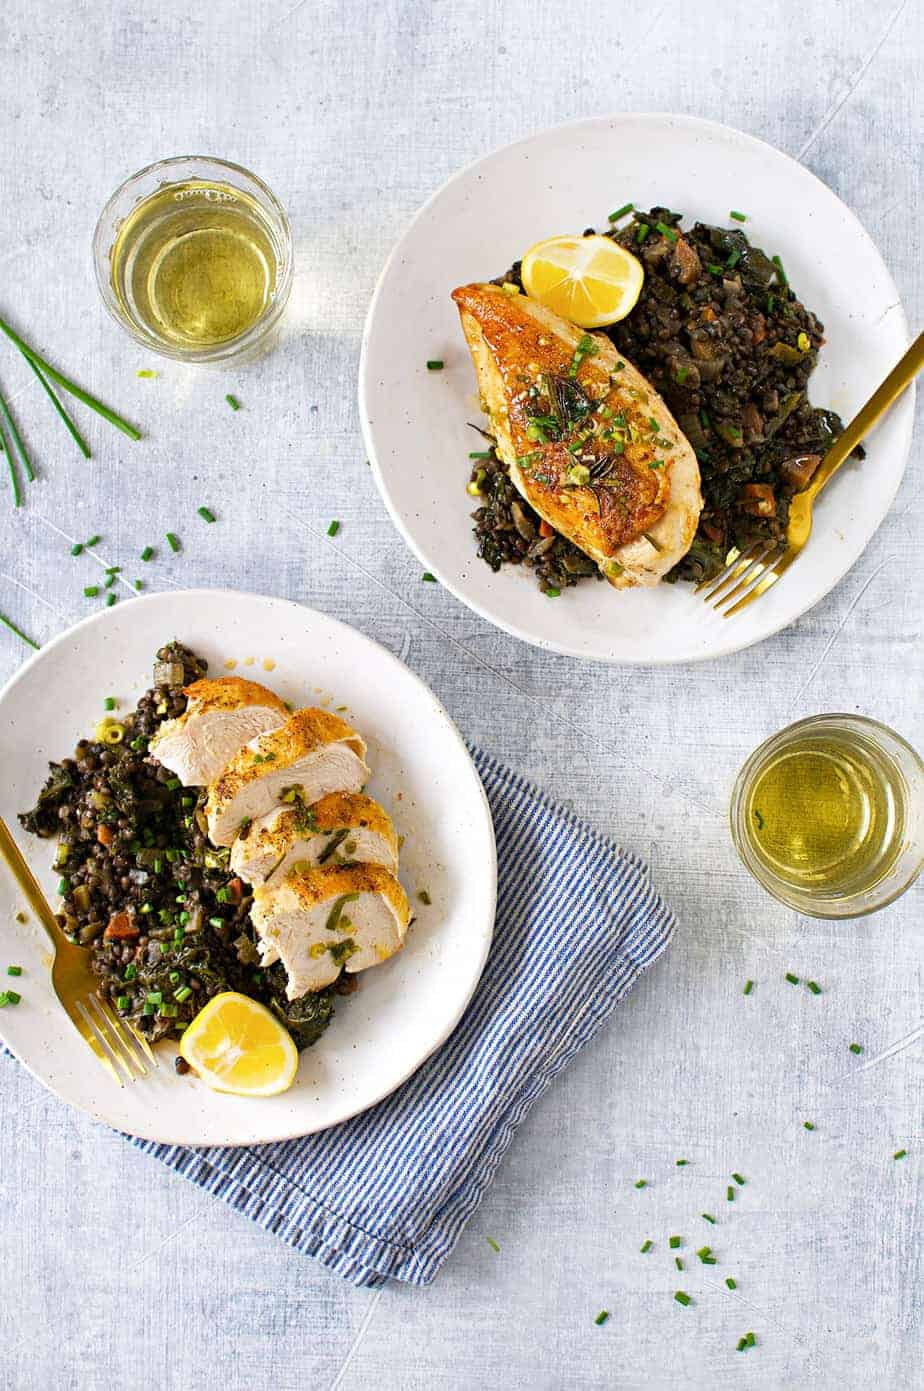 Crispy Pan-Roasted Chicken Breasts with Lemon-Scallion Drippings recipe (via thepigandquill.com) #glutenfree #mealprep #dinner